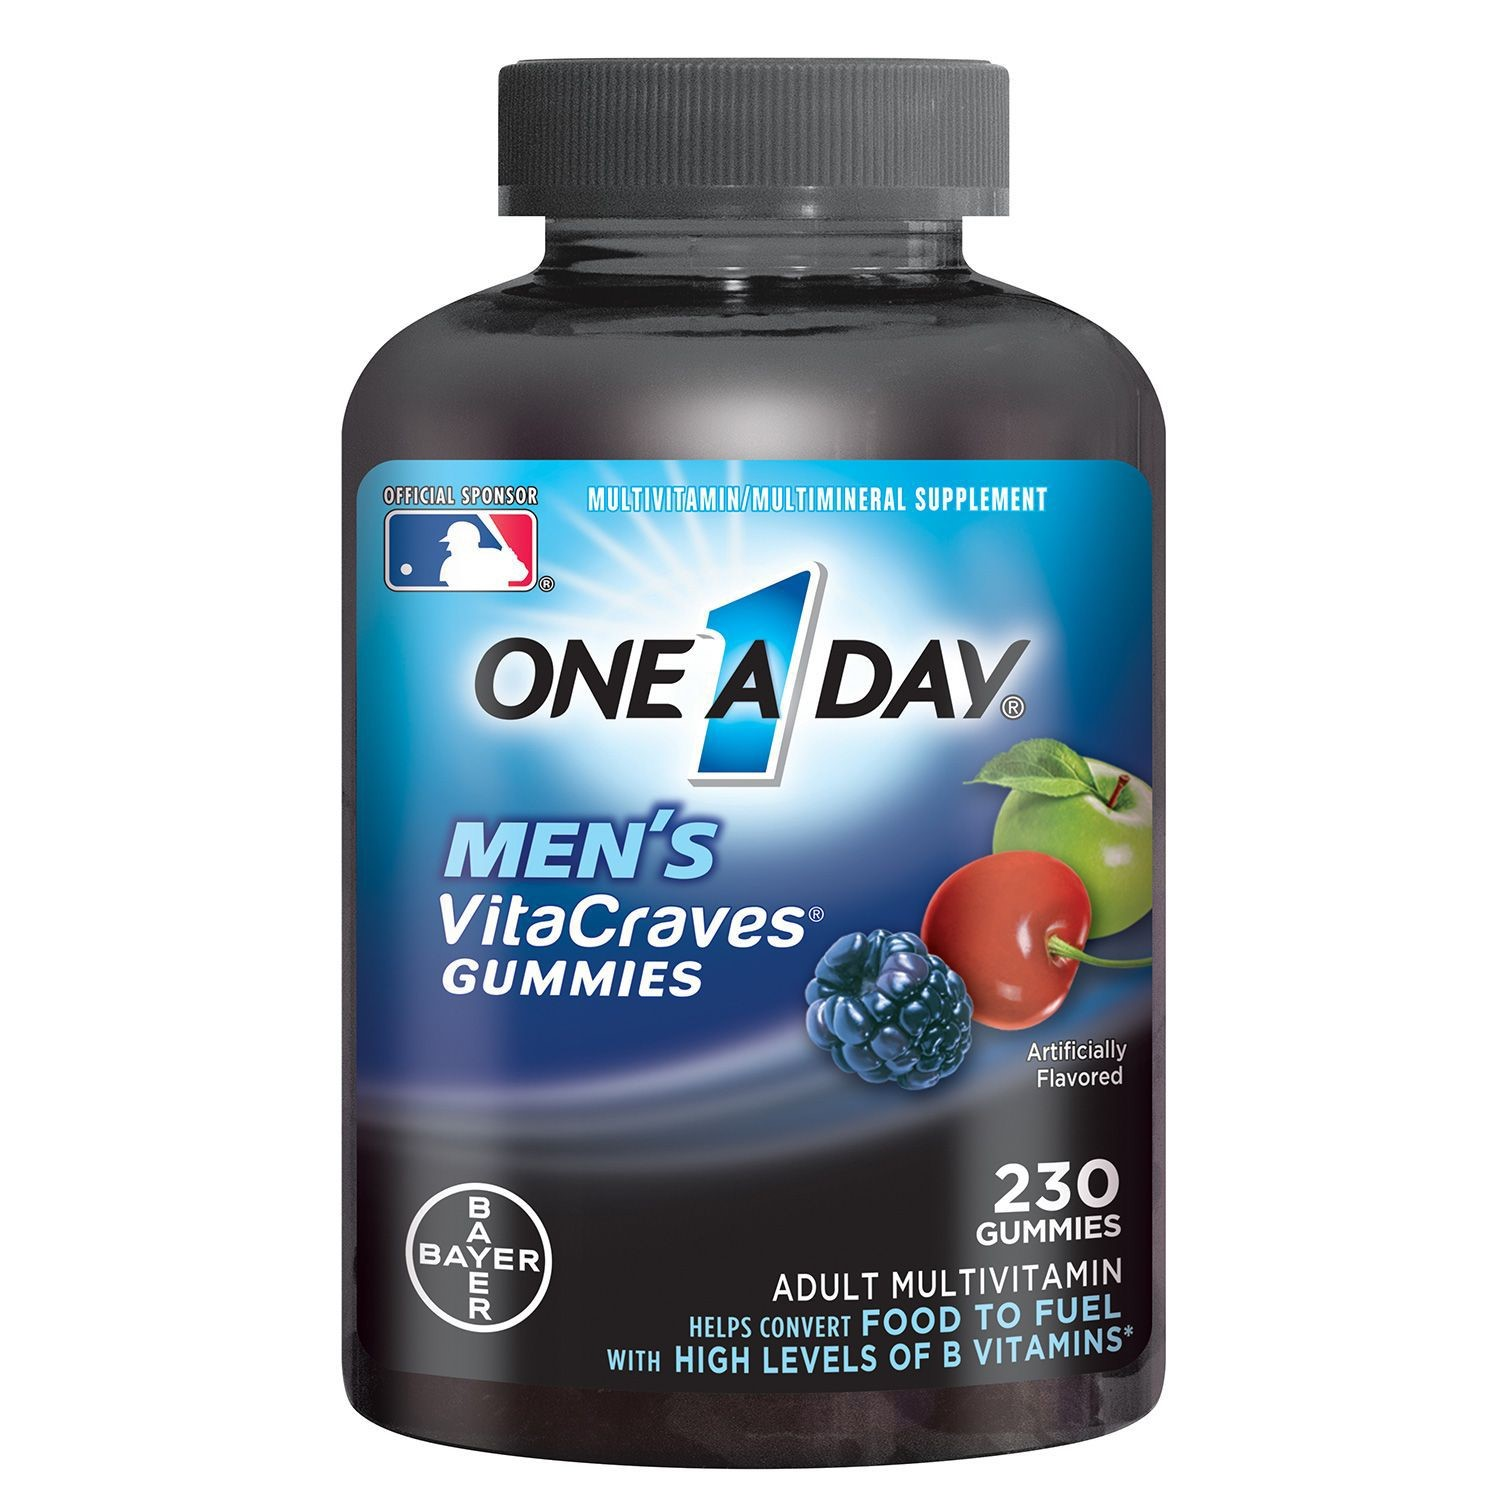 One A Day Men's Vitacraves Multivitamin Gummies, 230 Ct